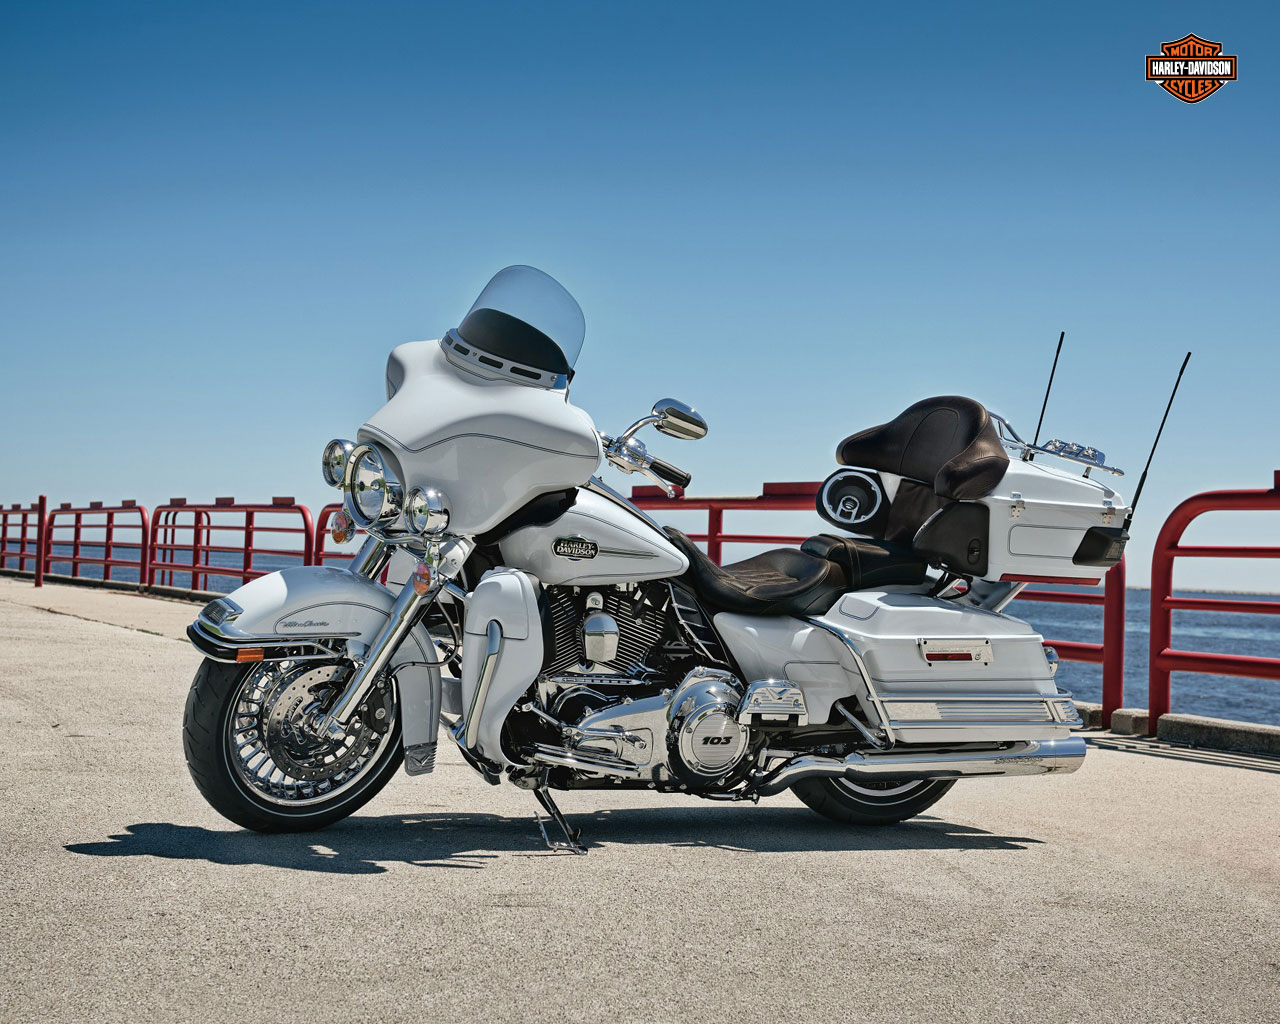 Harley-Davidson Electra Glide Classic #7